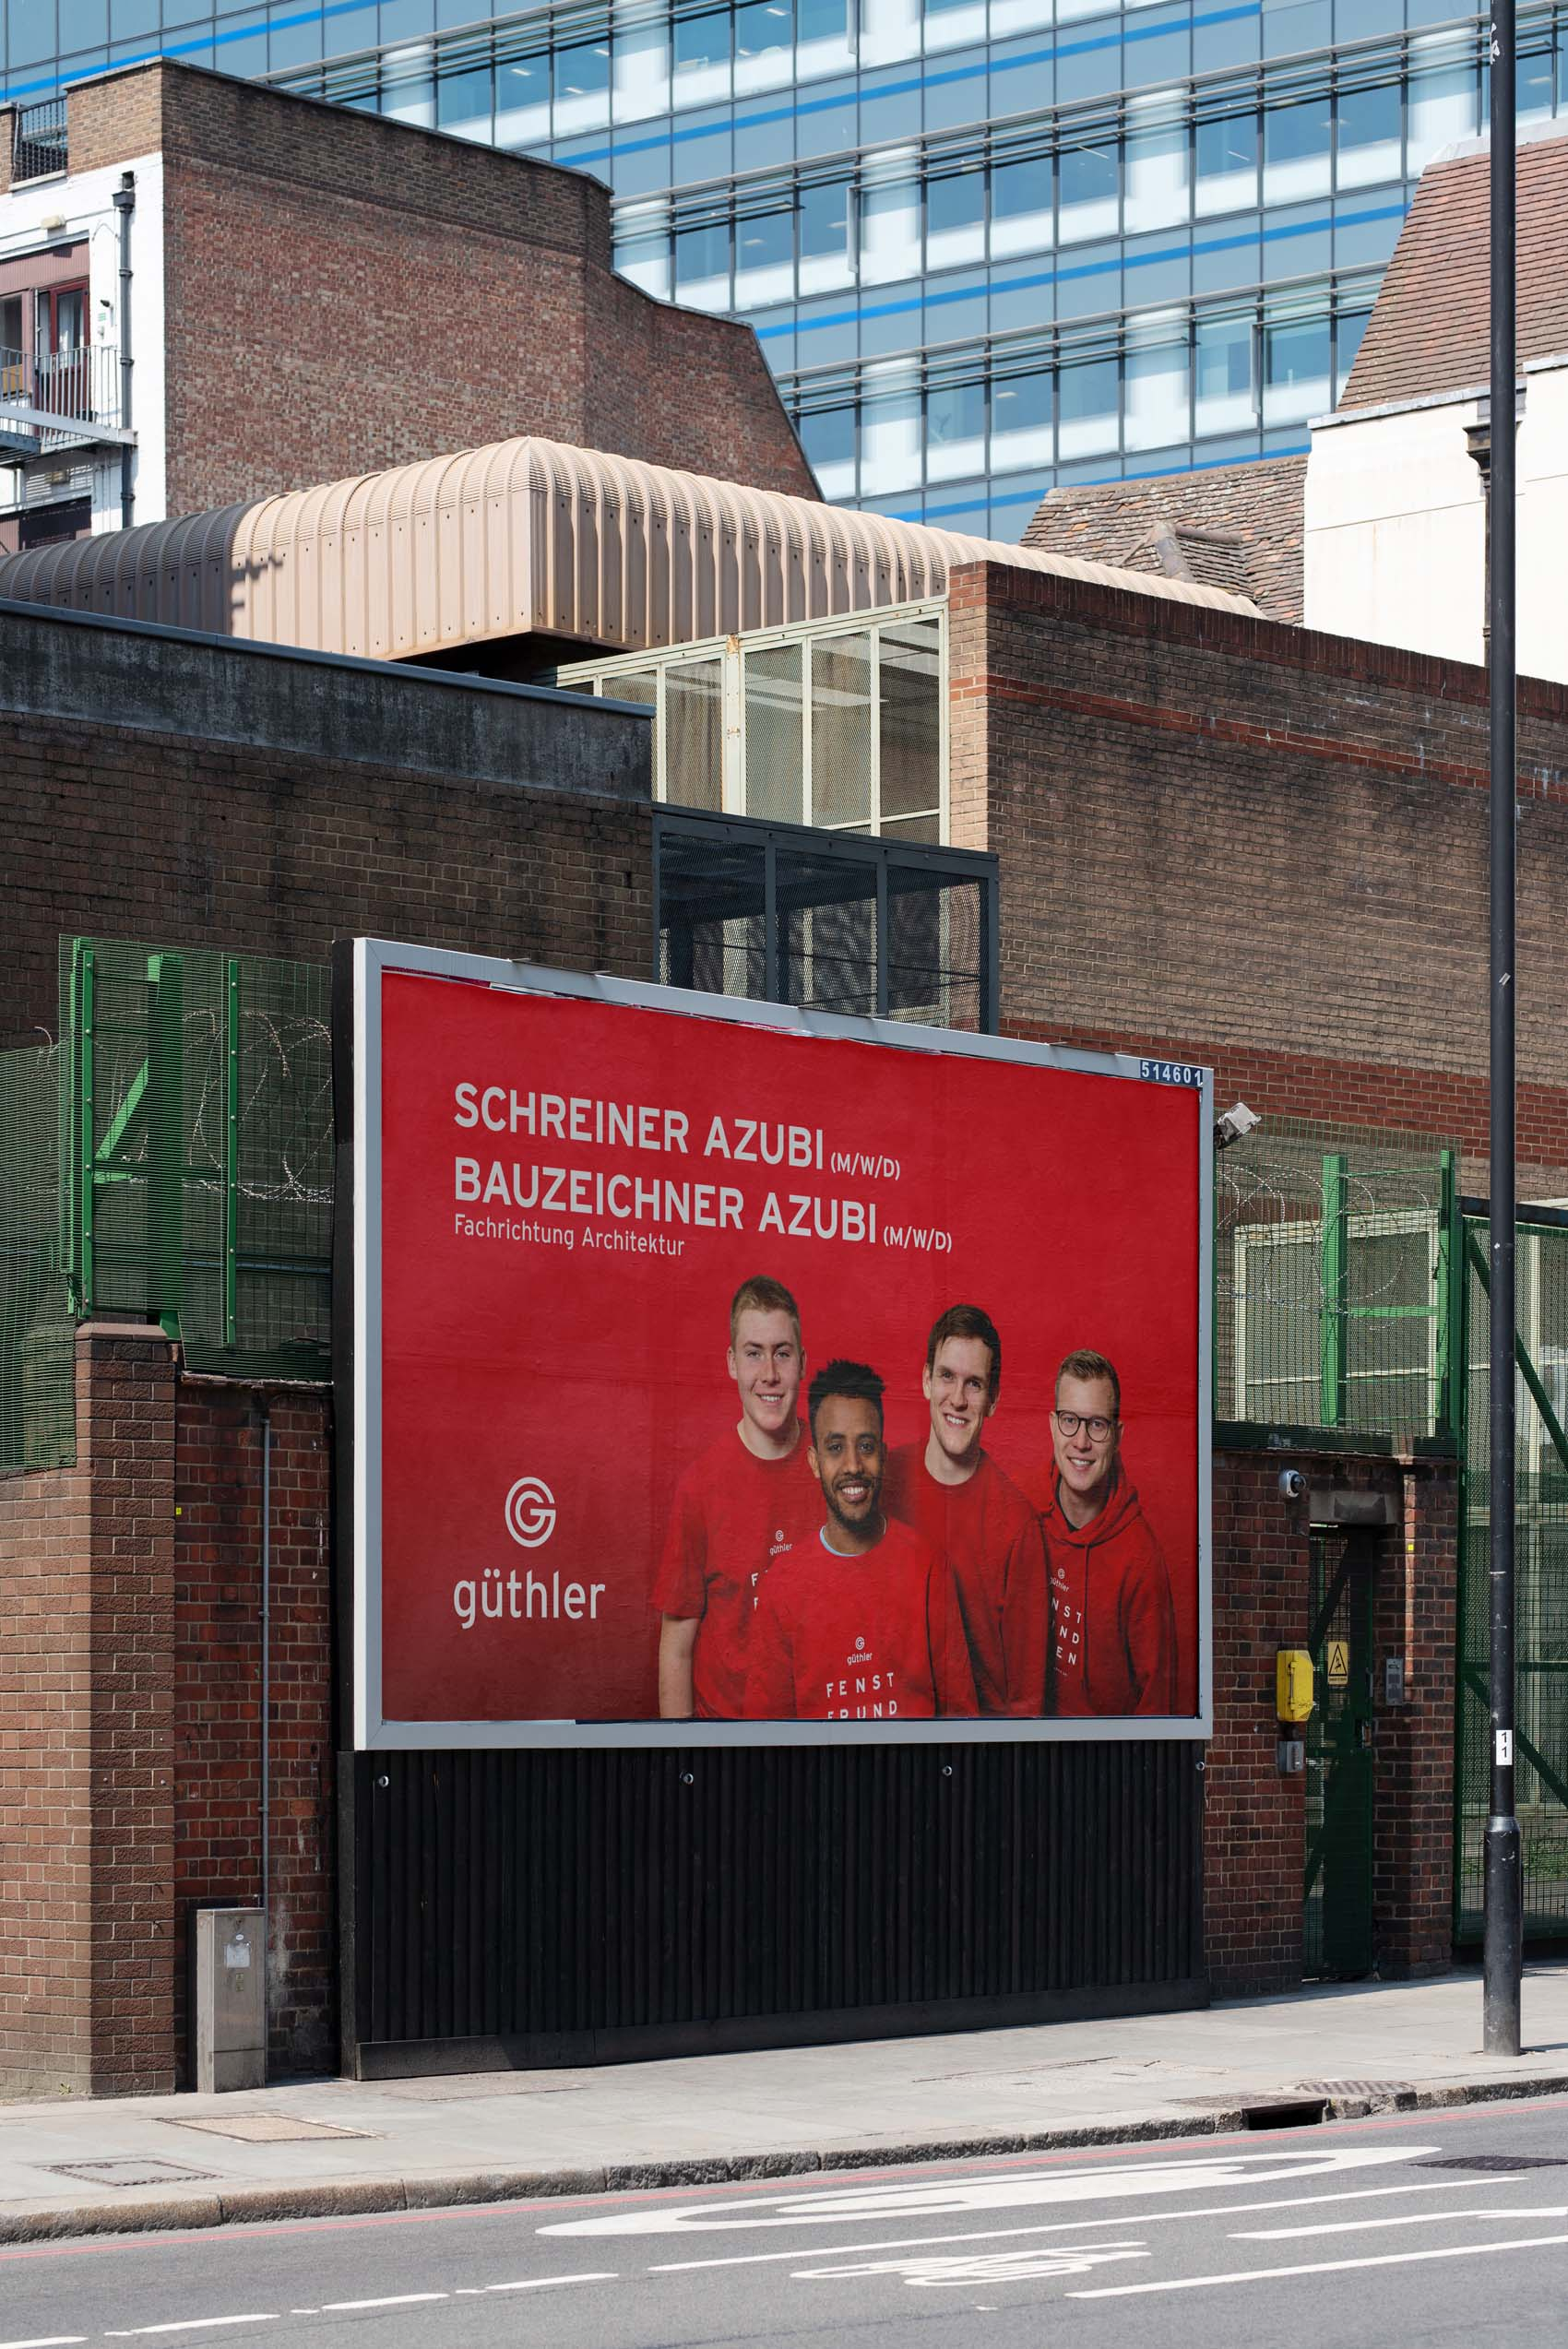 Großformatplakate Out-of-Home zum Employer Branding von Güthler Glasfassaden